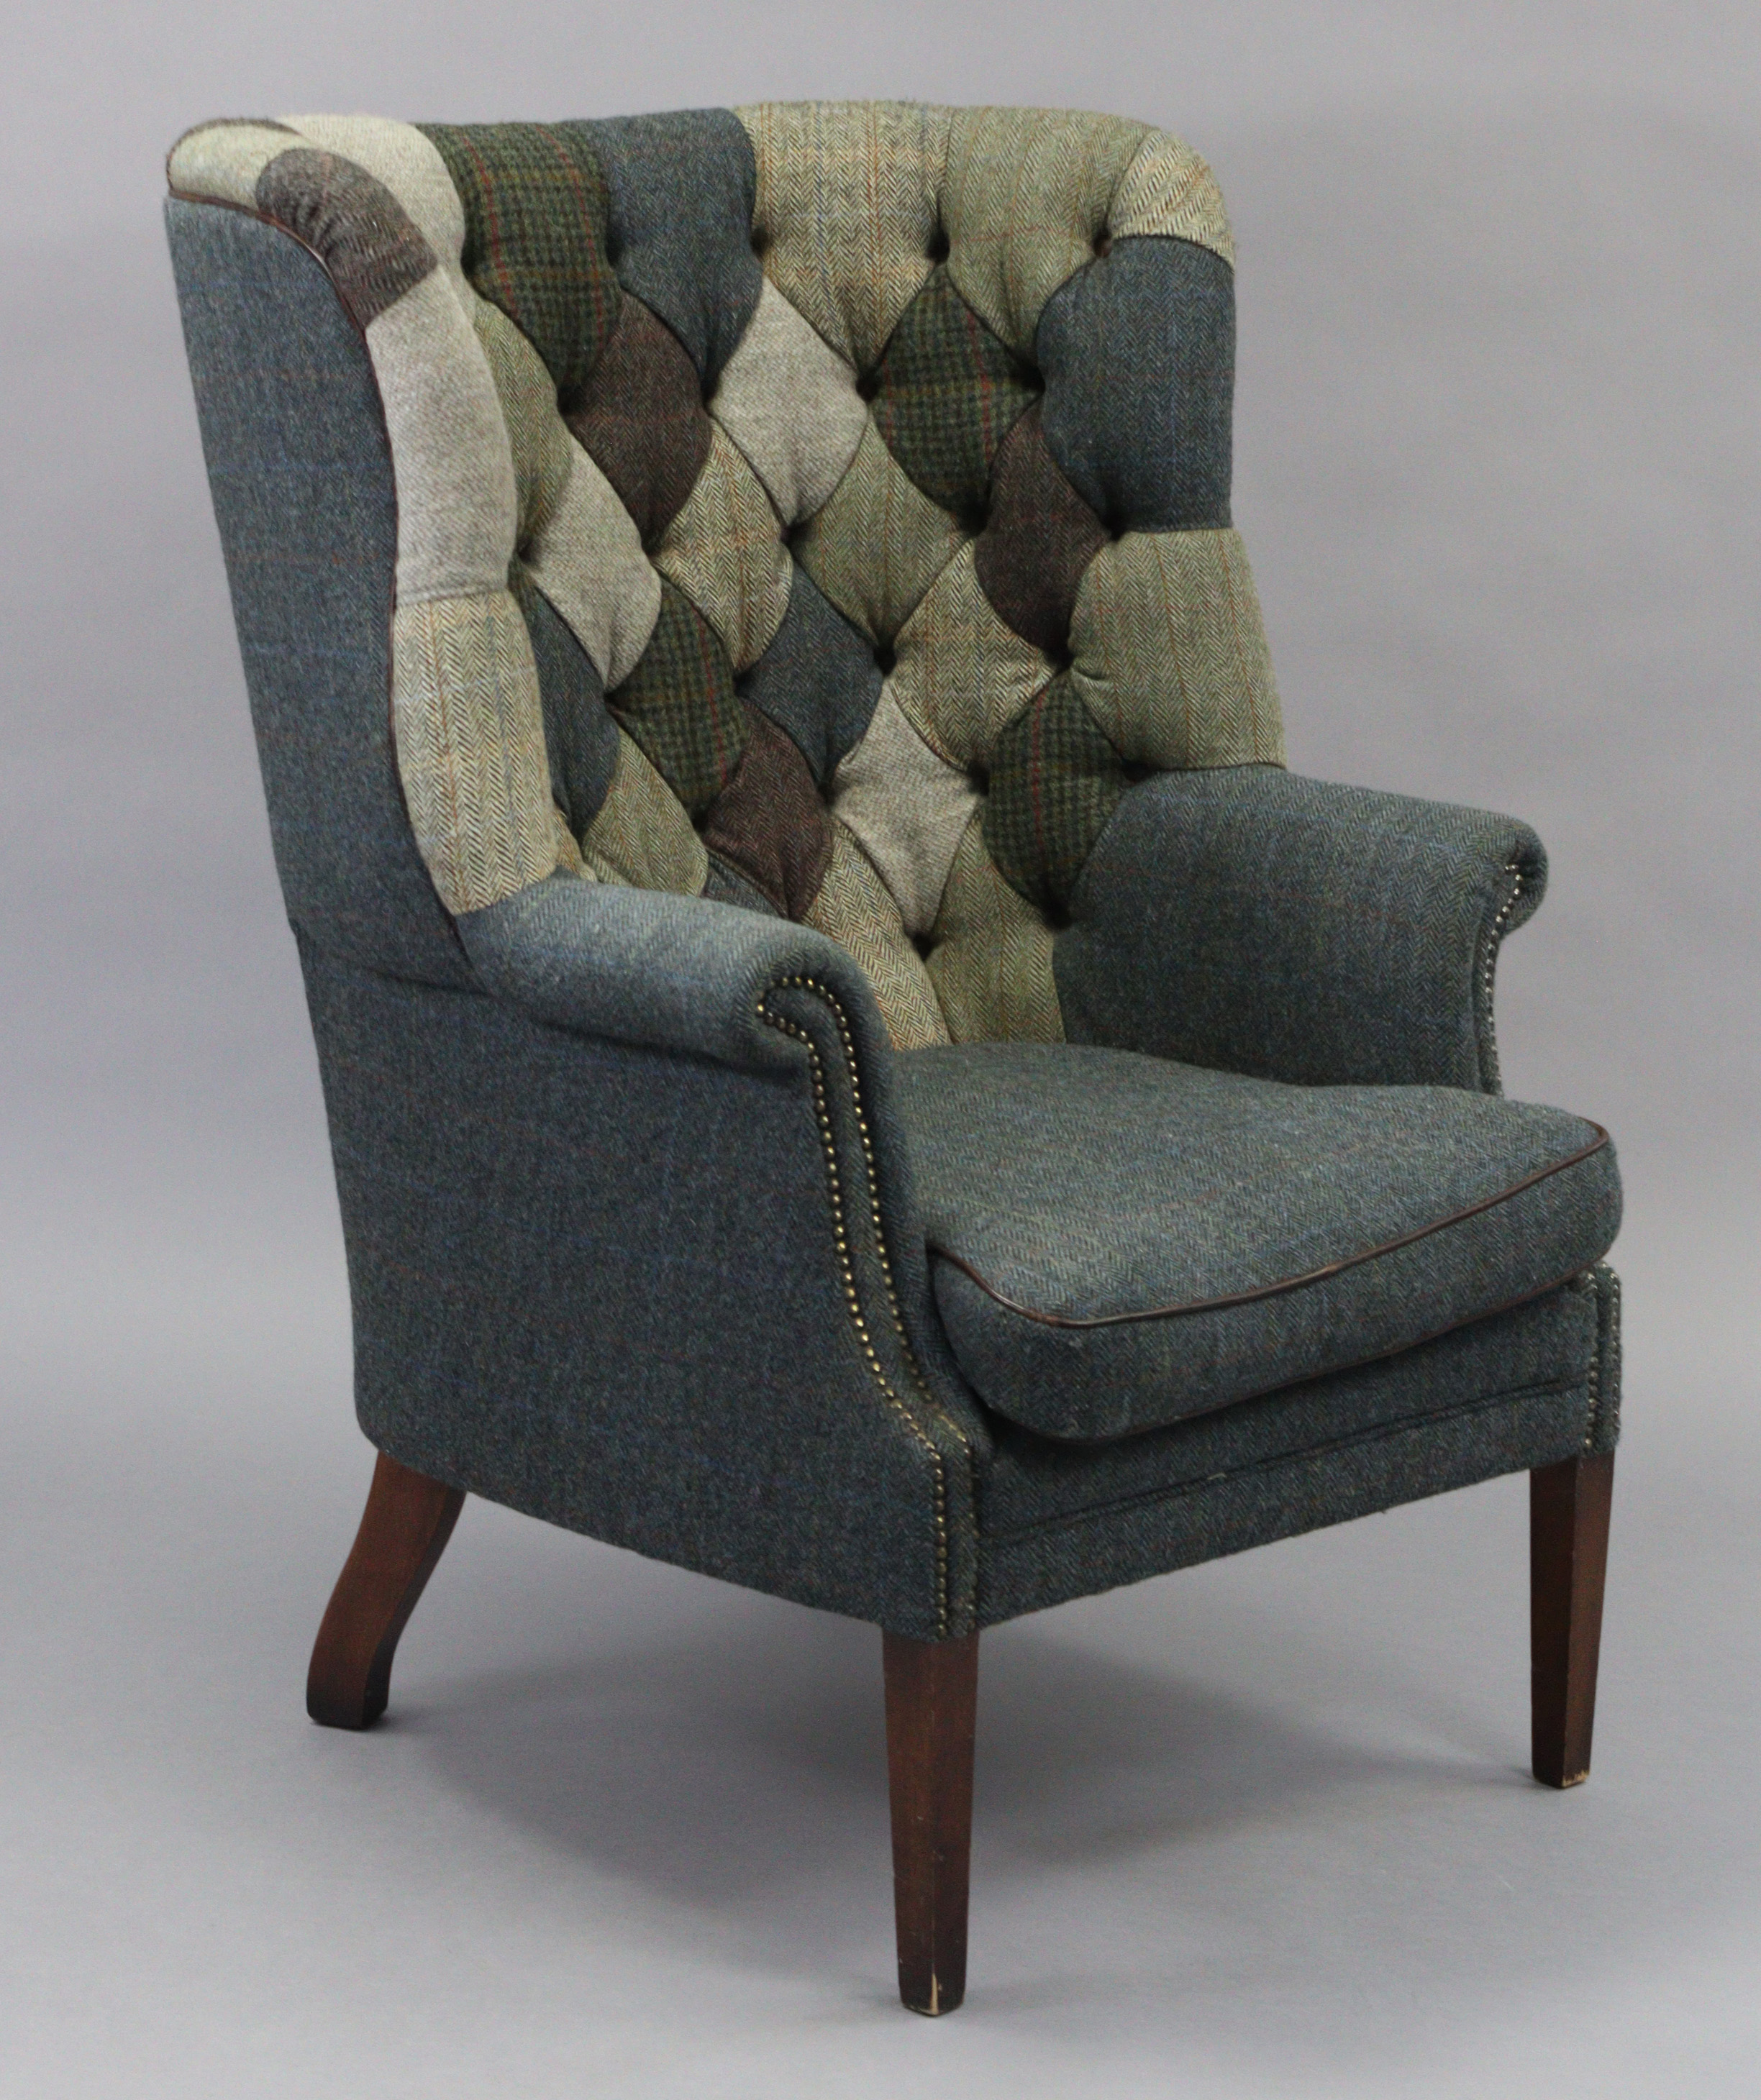 A Tetrad Harris Tweed Mackenzie buttoned-back armchair upholstered multi-coloured material, & on - Image 2 of 4